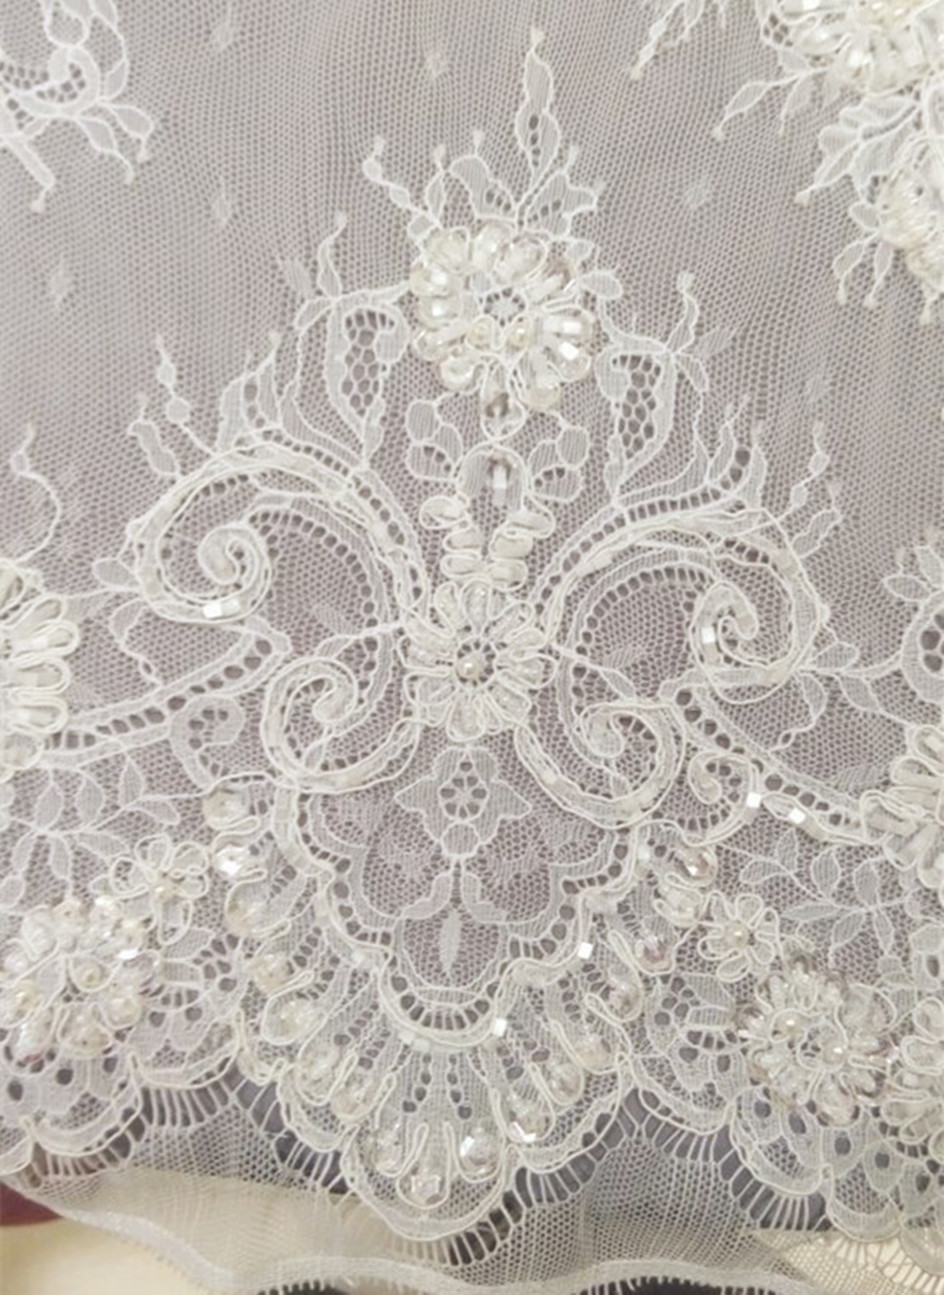 Buy luxury bridal dress lace material for Wedding dress lace fabric